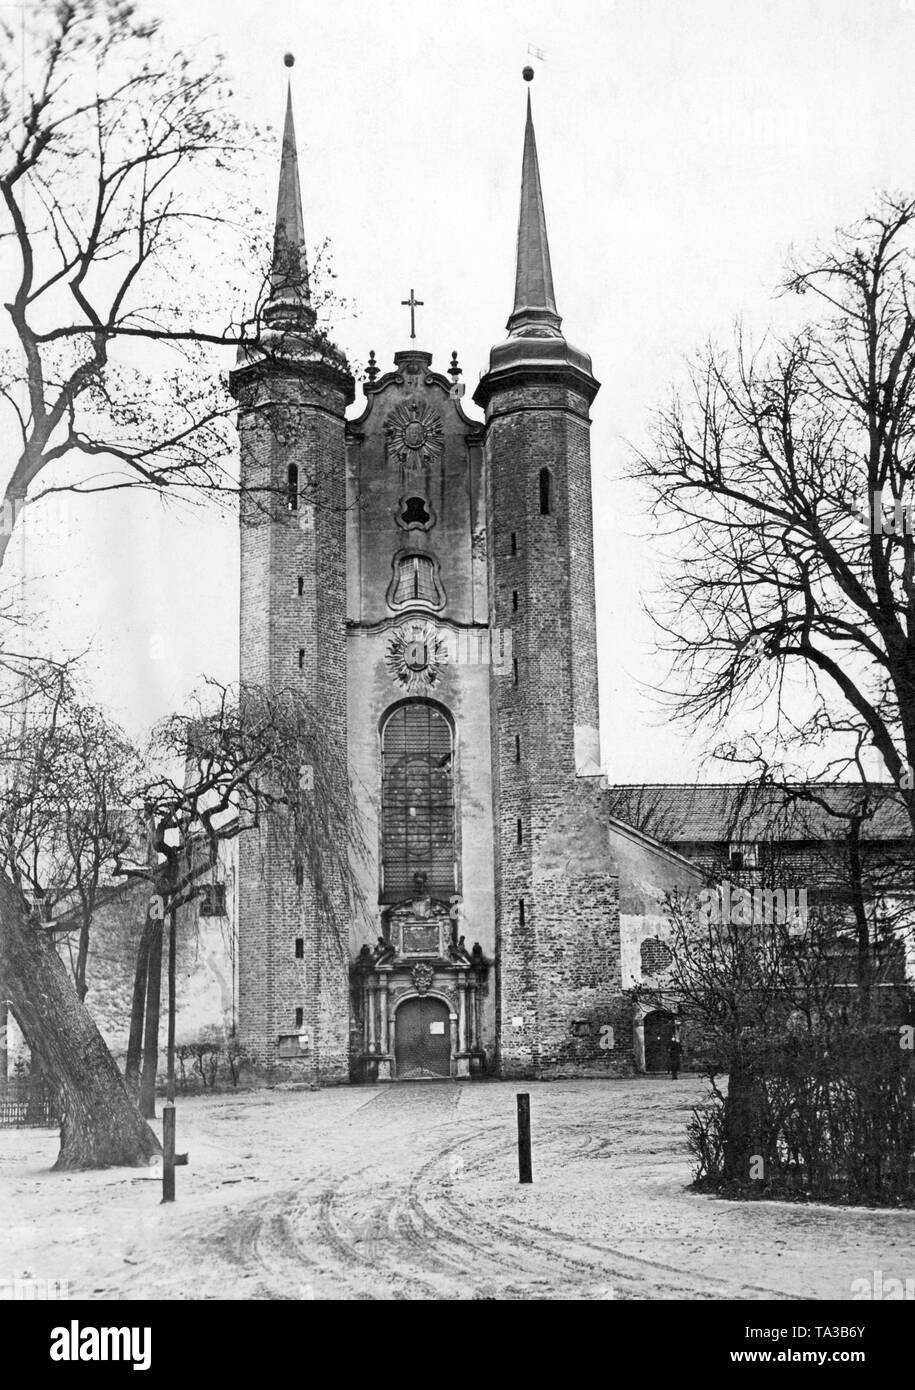 The photo shows the Oliwa Cathedral in Gdansk. It is dedicated to The Holy Trinity, Blessed Virgin Mary and St Bernard. The three-nave basilica was built at the end of the 12th century by the Cistercians and belonged to a monastery. In 1925, with the establishment of a diocese by Pope Paul VI, the church was raised to the dignity of a cathedral. - Stock Image